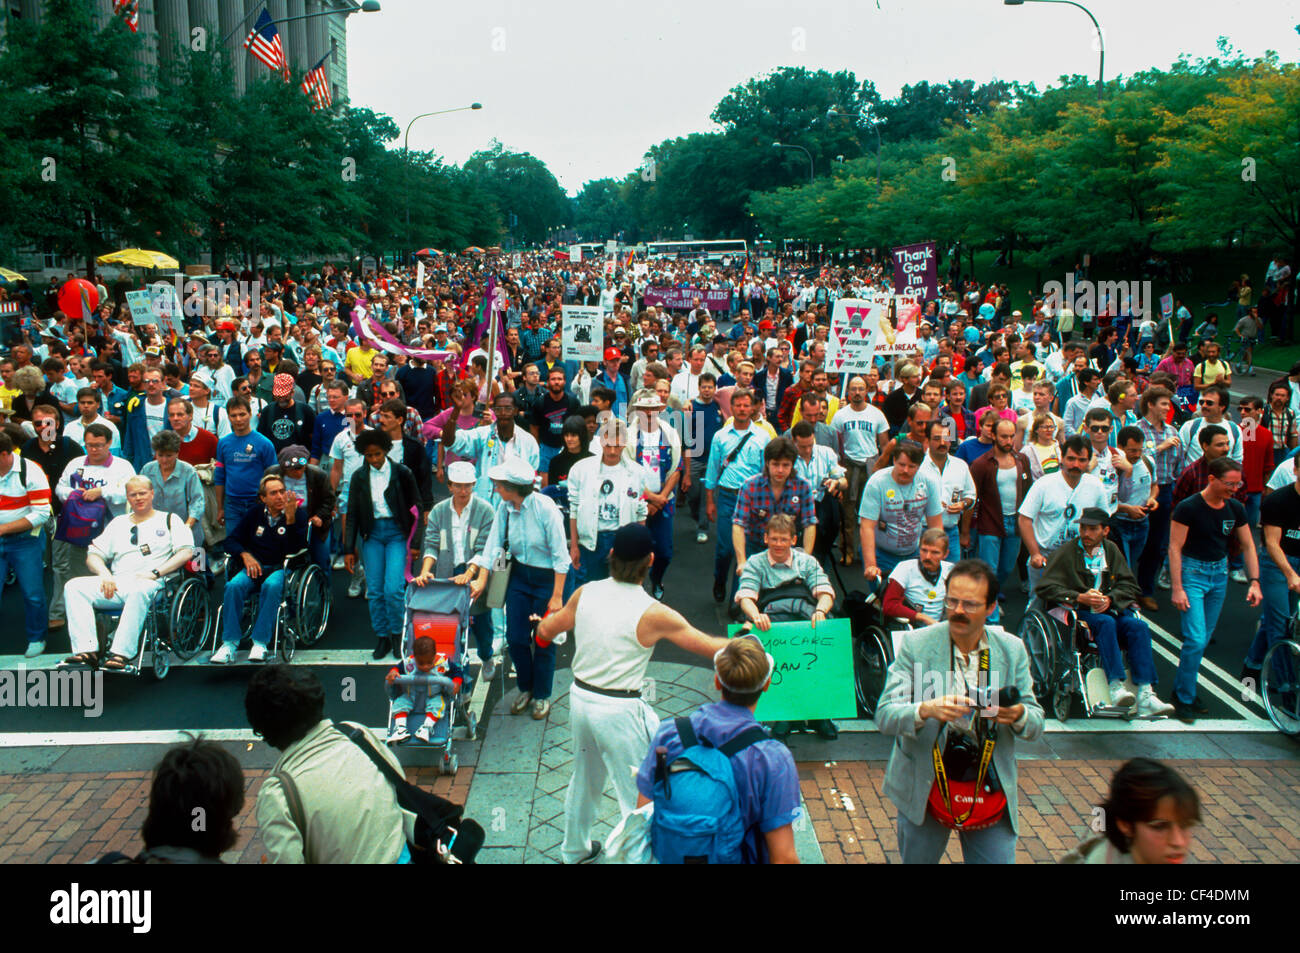 Aerial View, March on Washington DC, USA, Demonstration of AIDS Activists Against (Former) U.S. President Reagan Stock Photo